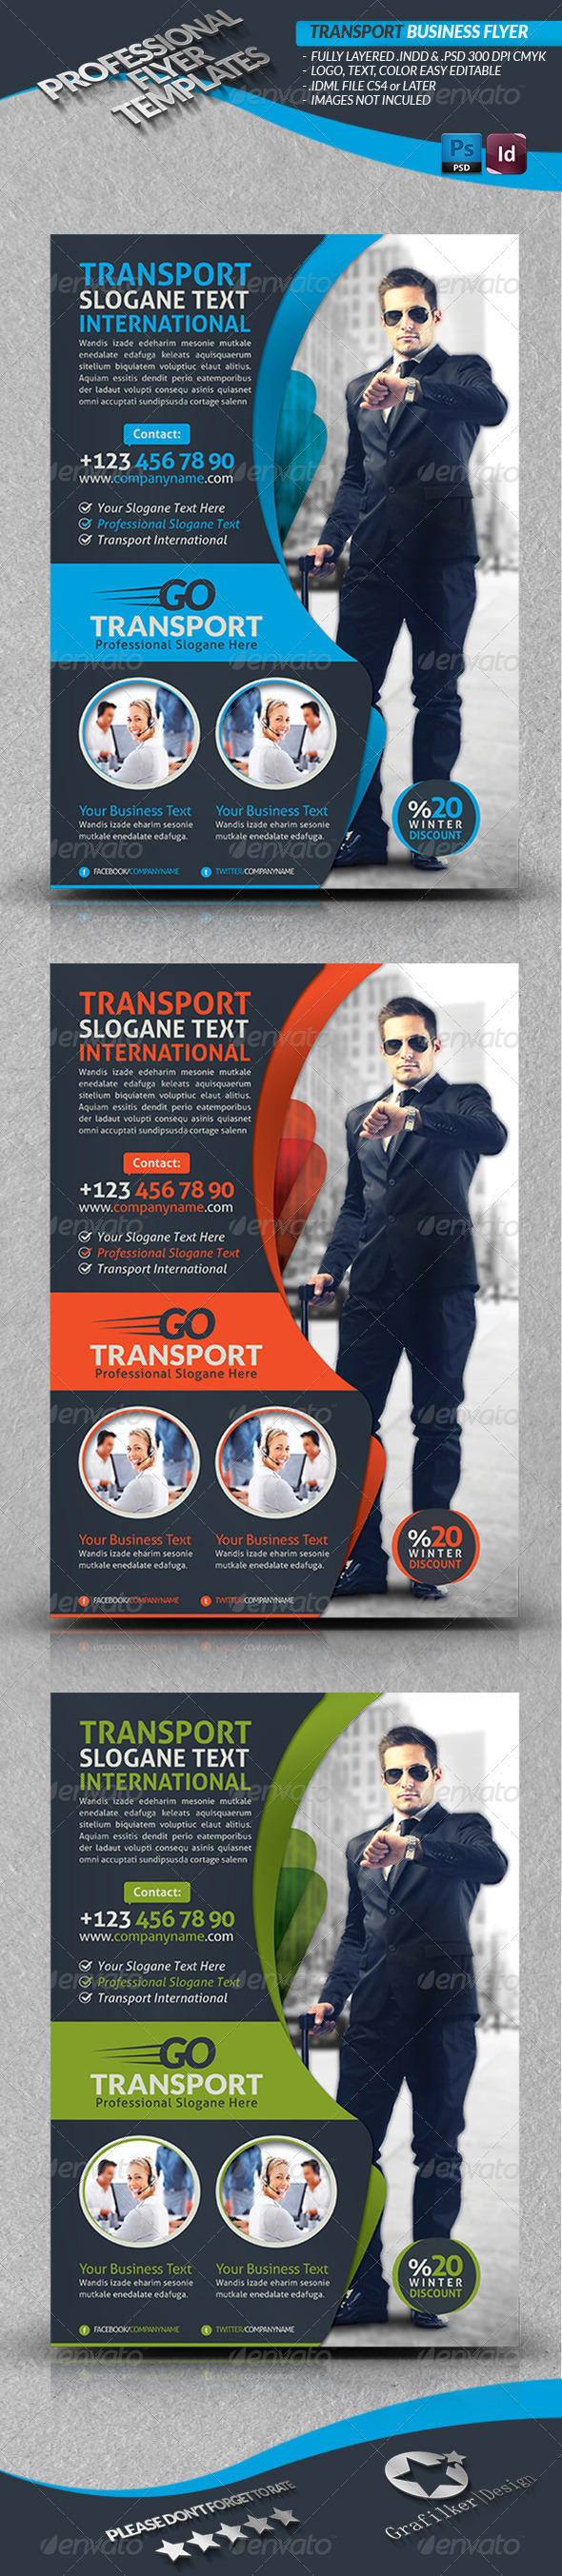 Transport Business Flyer - Corporate Flyers